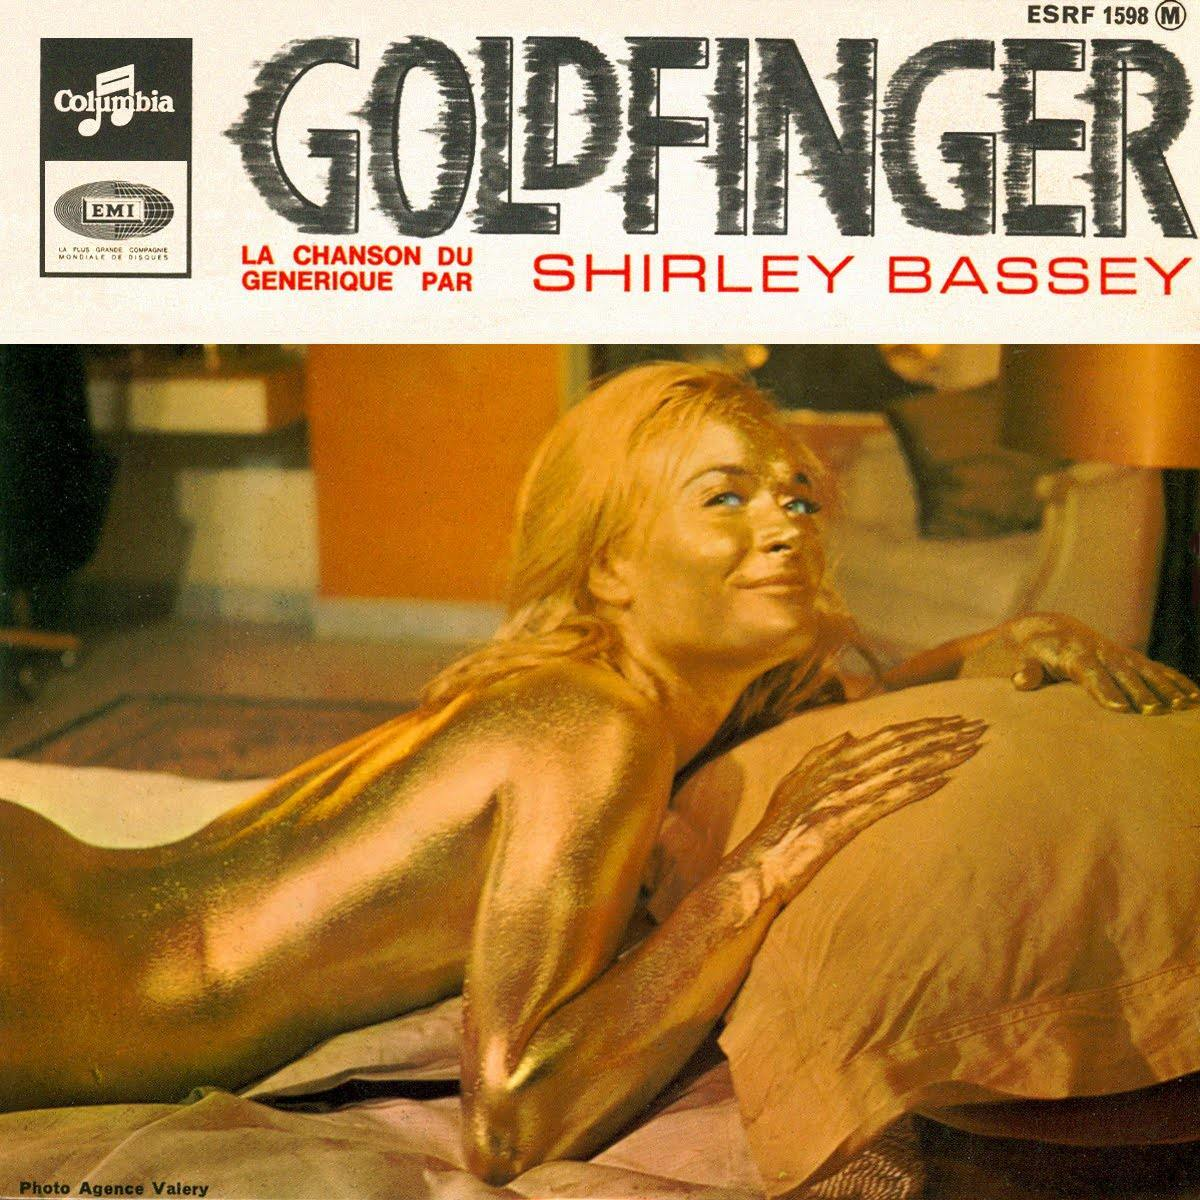 French soundtrack for Goldfinger